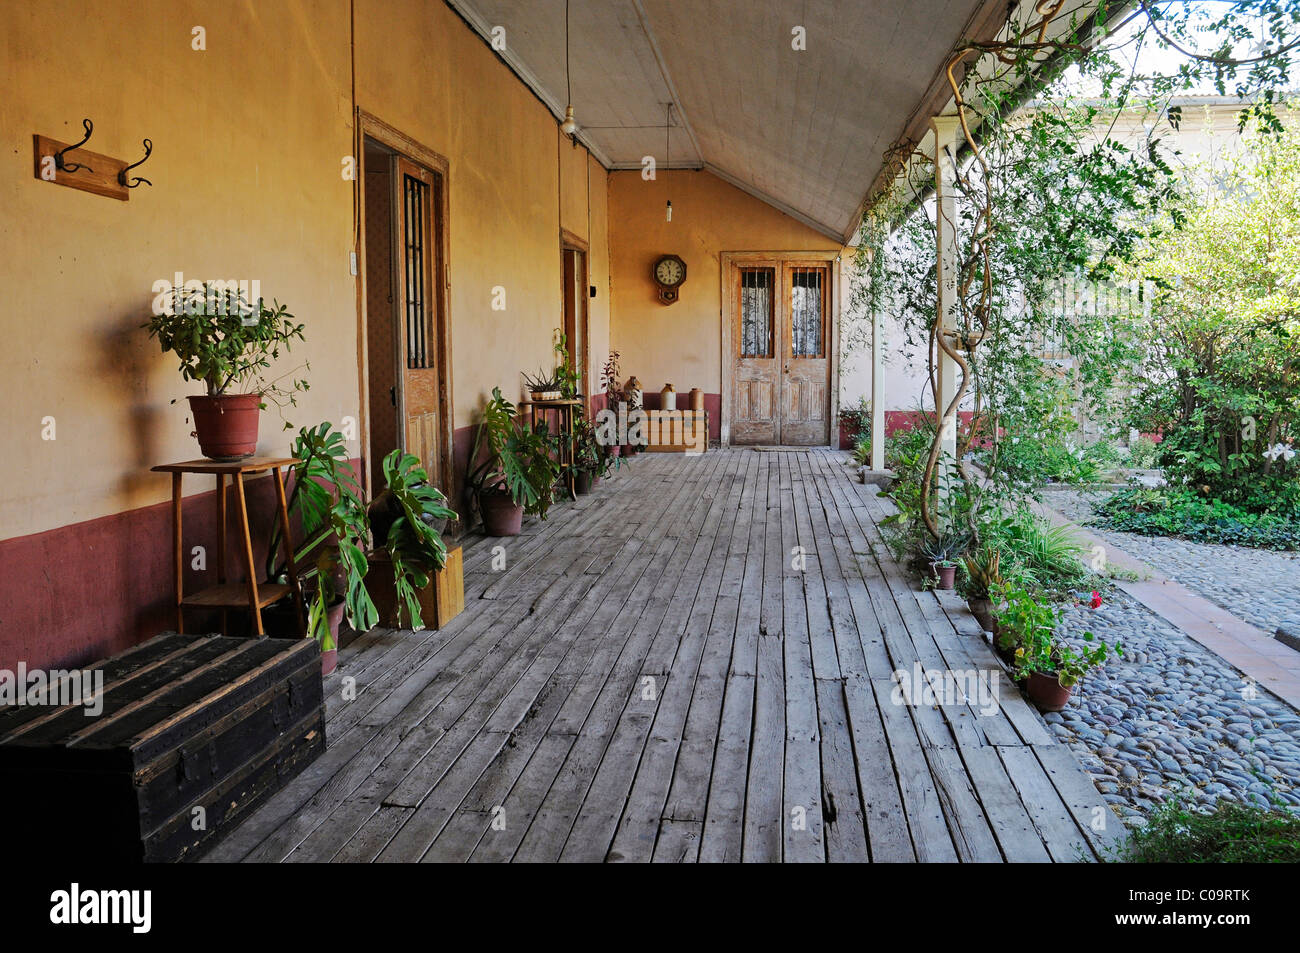 patio veranda el solar de los madariaga traditional residence stock photo 34637027 alamy. Black Bedroom Furniture Sets. Home Design Ideas